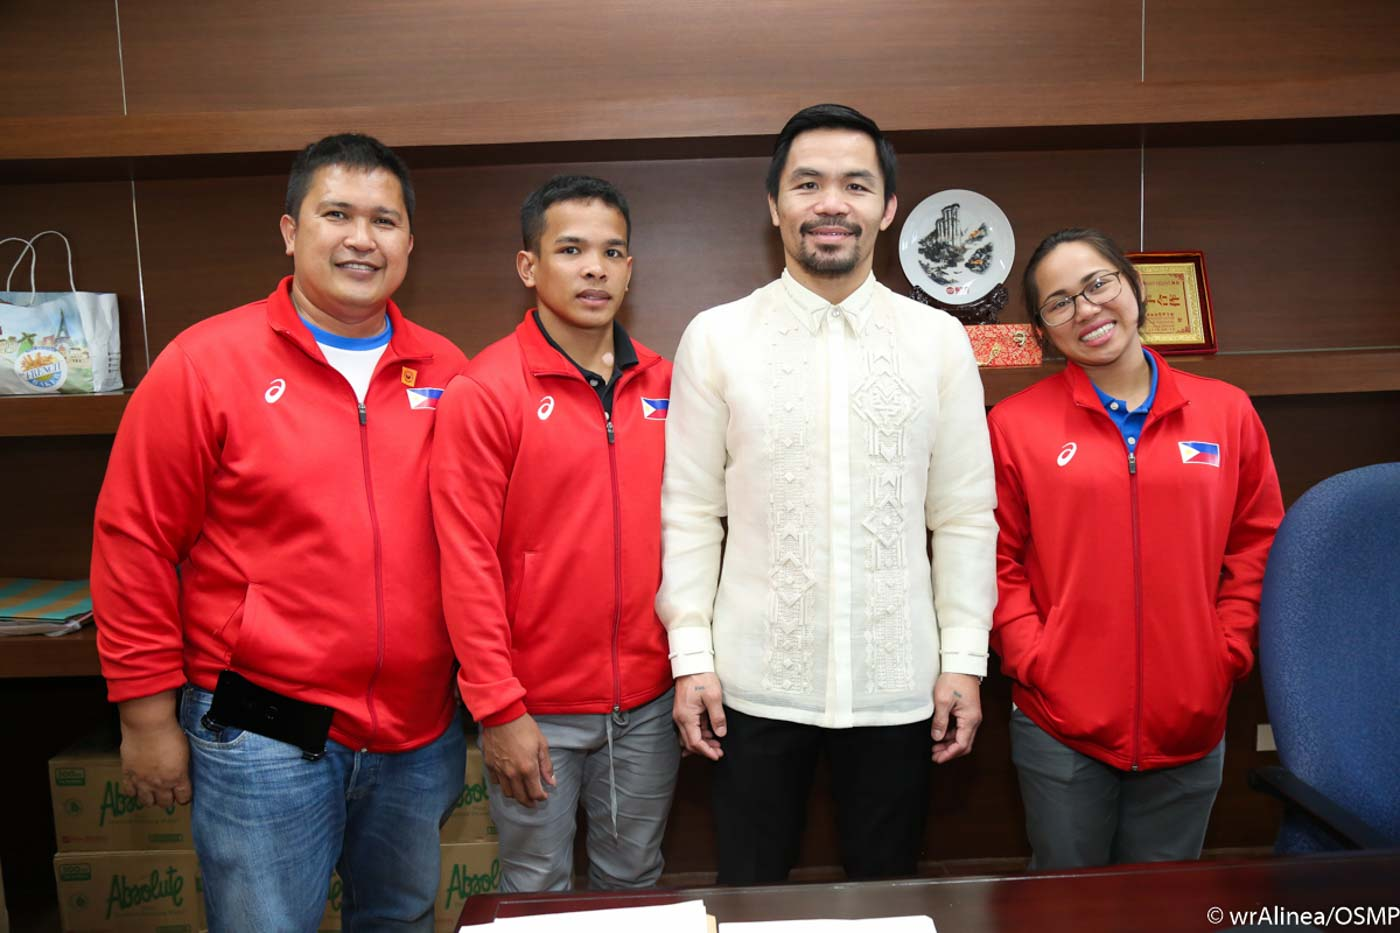 From left to right: Diaz's coach, Nestor Colonia, Manny Pacquiao, and Hidilyn Diaz. Photo by Wendell Alinea